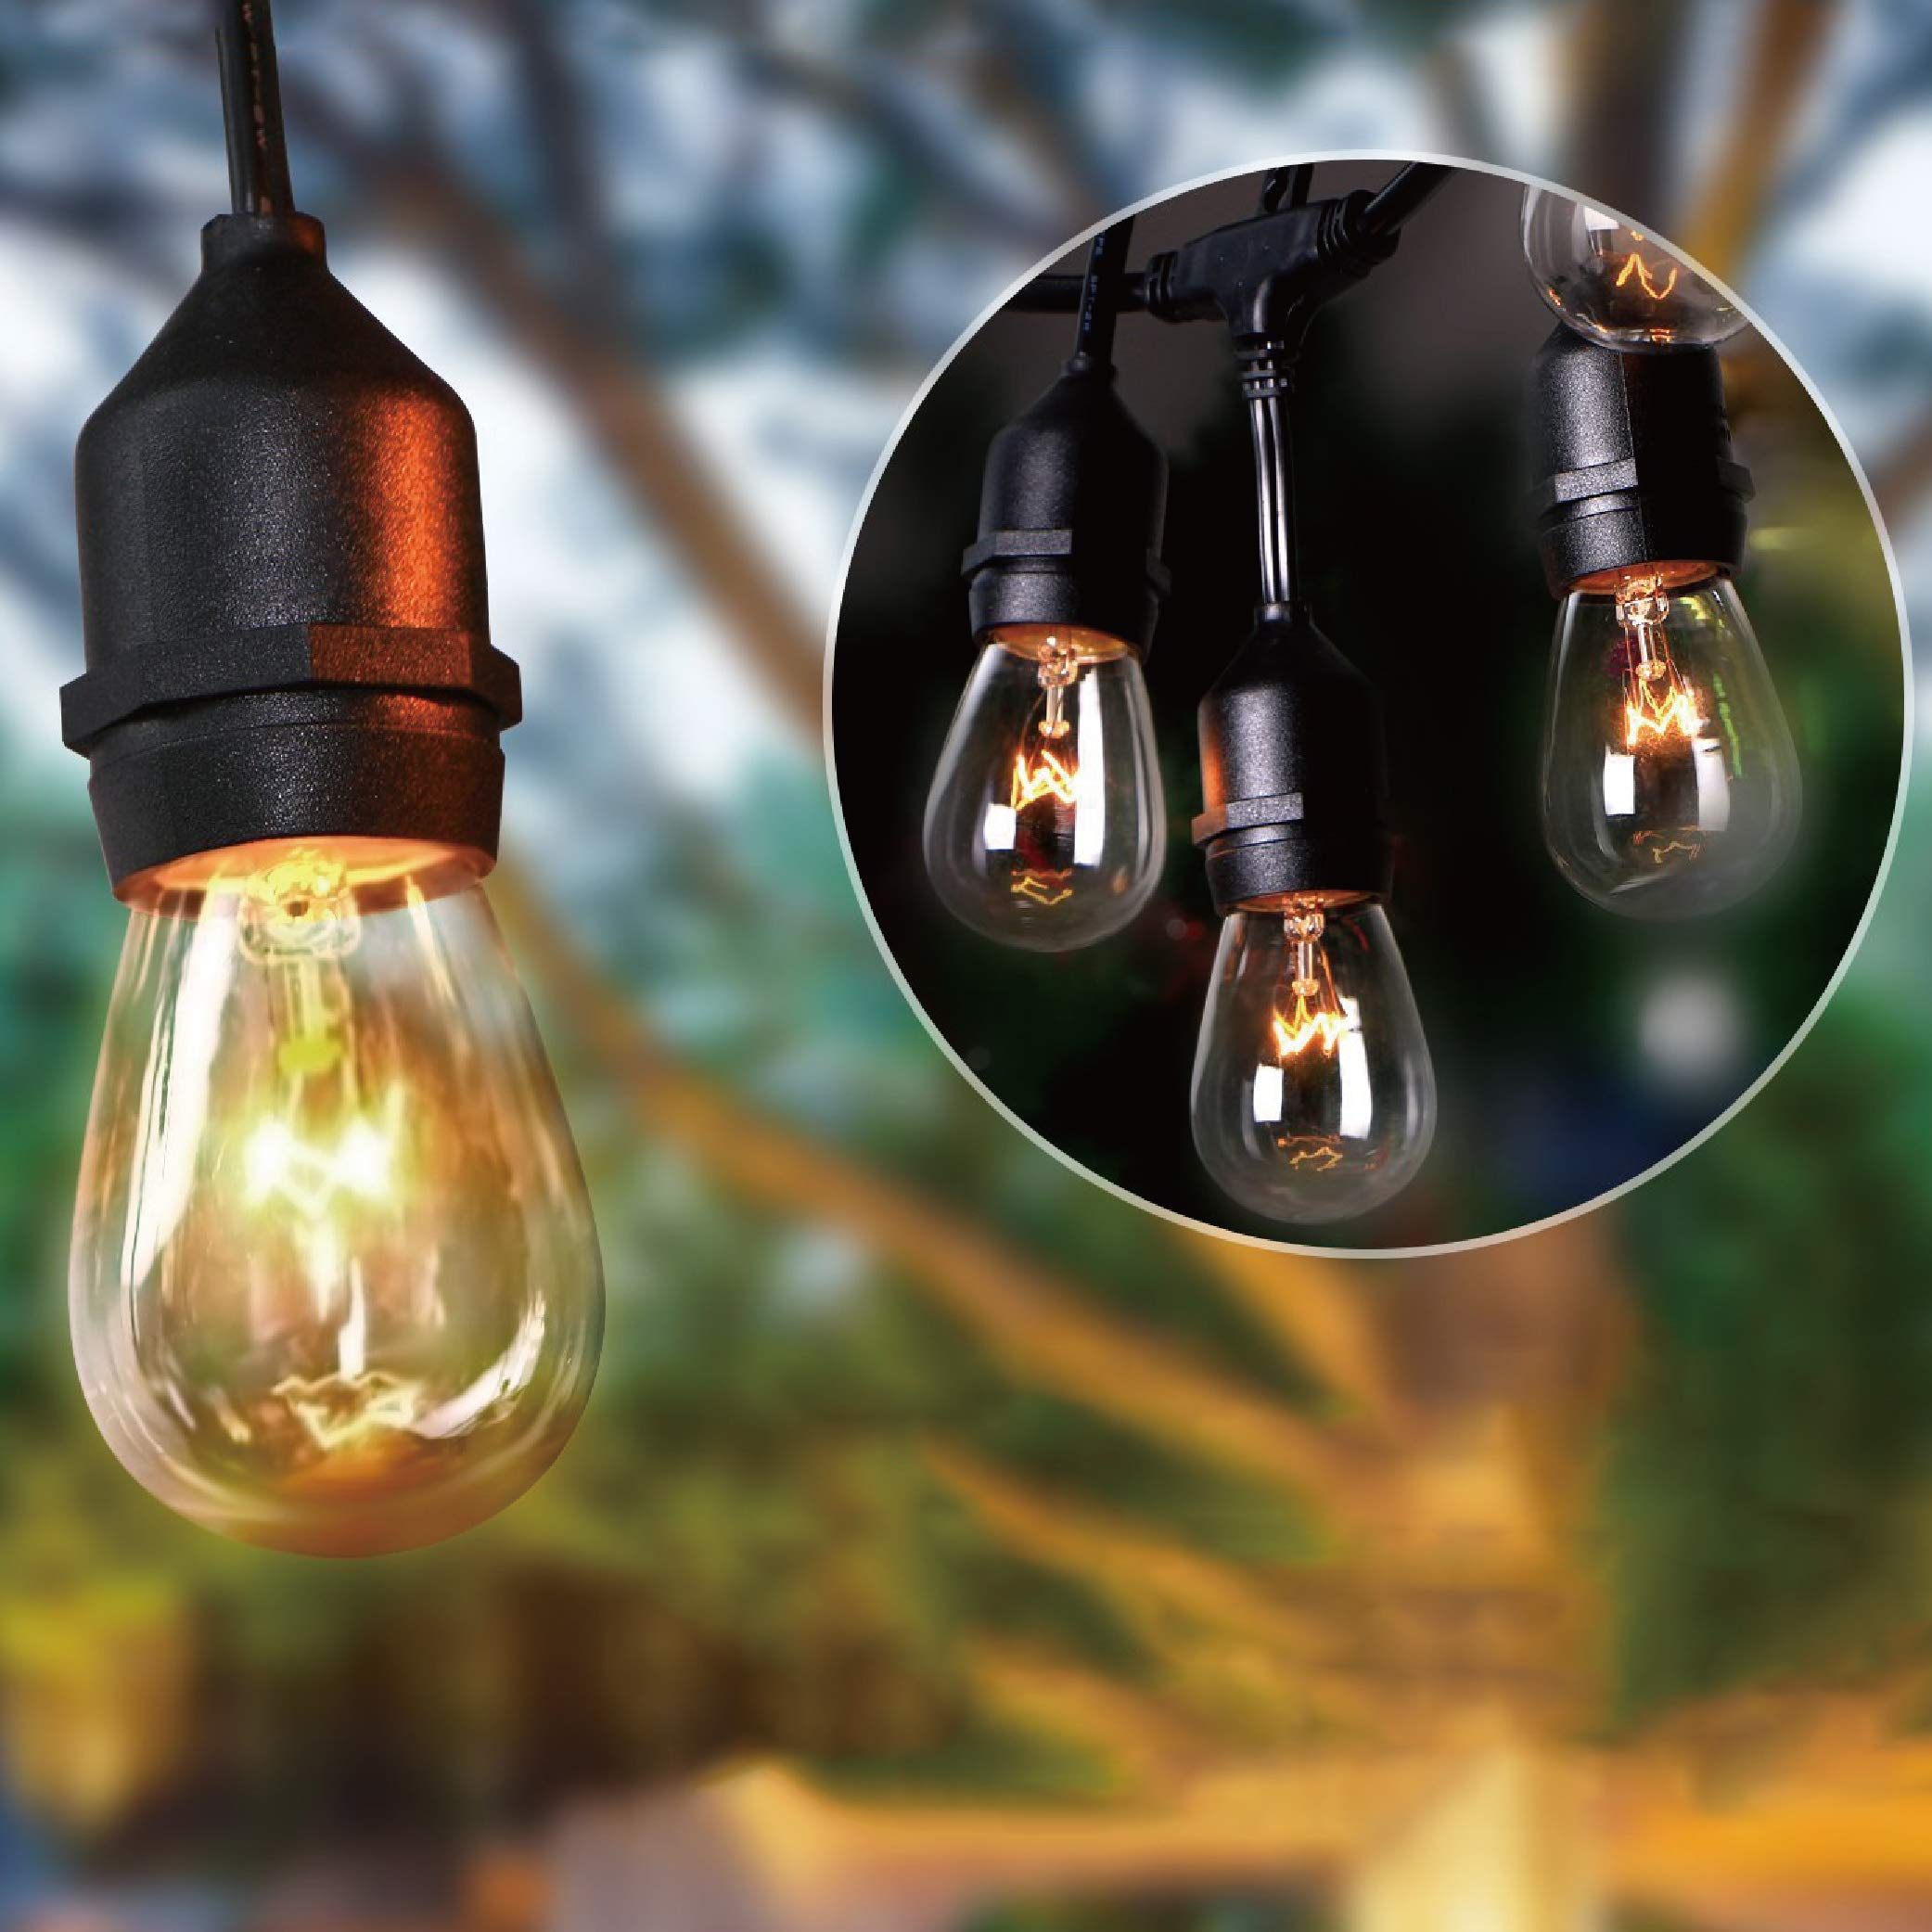 KMC 50 FT Waterproof Outdoor String Lights, 16/3 Heavy Duty Power Cord with 15 x E26 Sockets and Hanging Loops, 18 x 11 Watt S14 Dimmable Incandescent Bulbs Included (3 Spares), Perfect Patio Lights by KMC (Image #3)